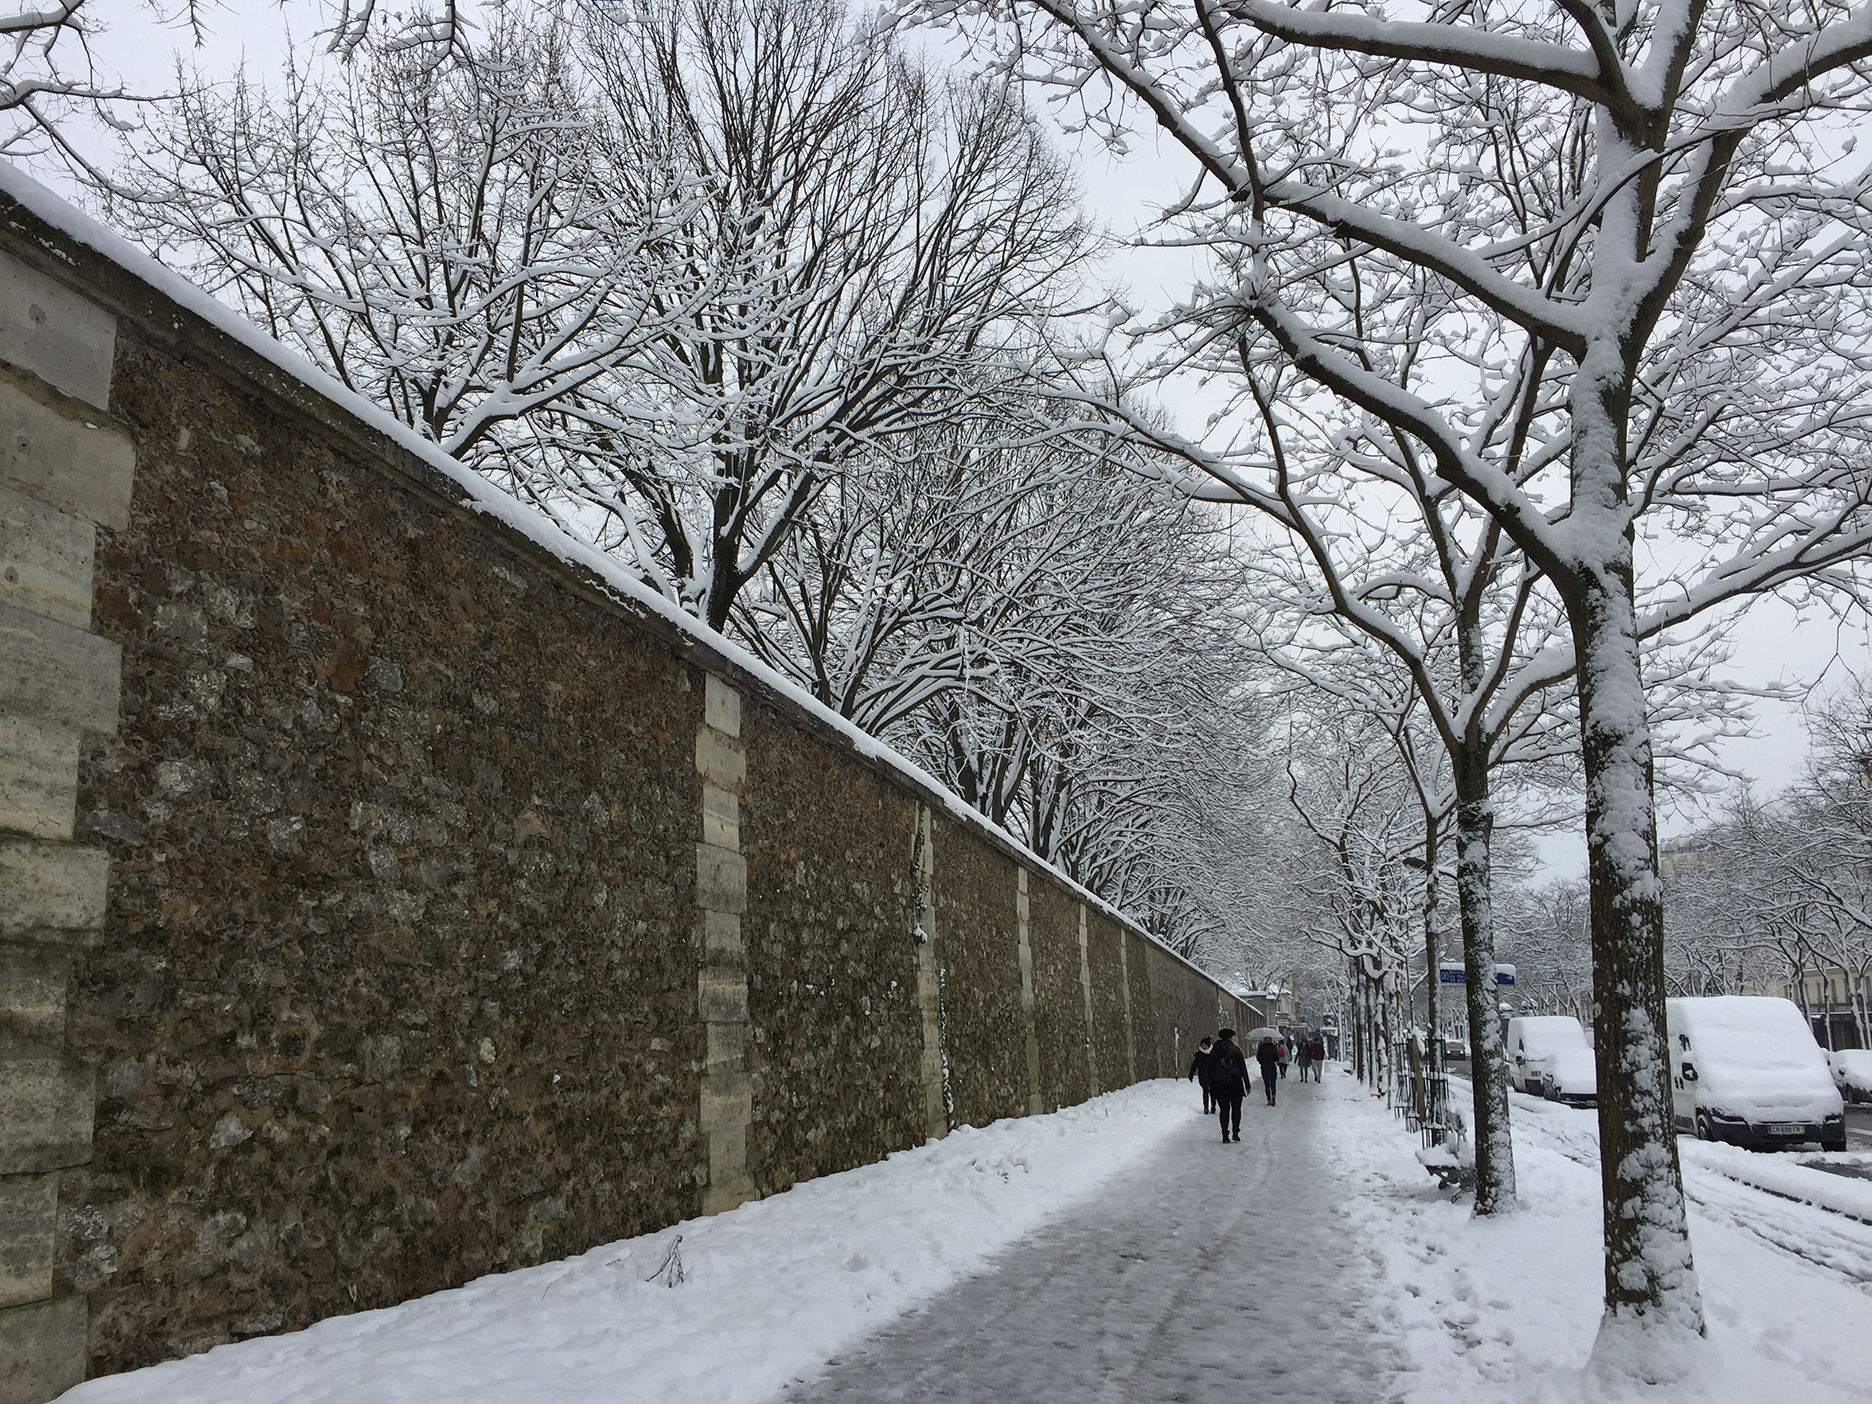 I thought the Père Lachaise cemetery would provide some interesting photo opportunities but it was closed because of the snow. We walked along the perimeter wall.